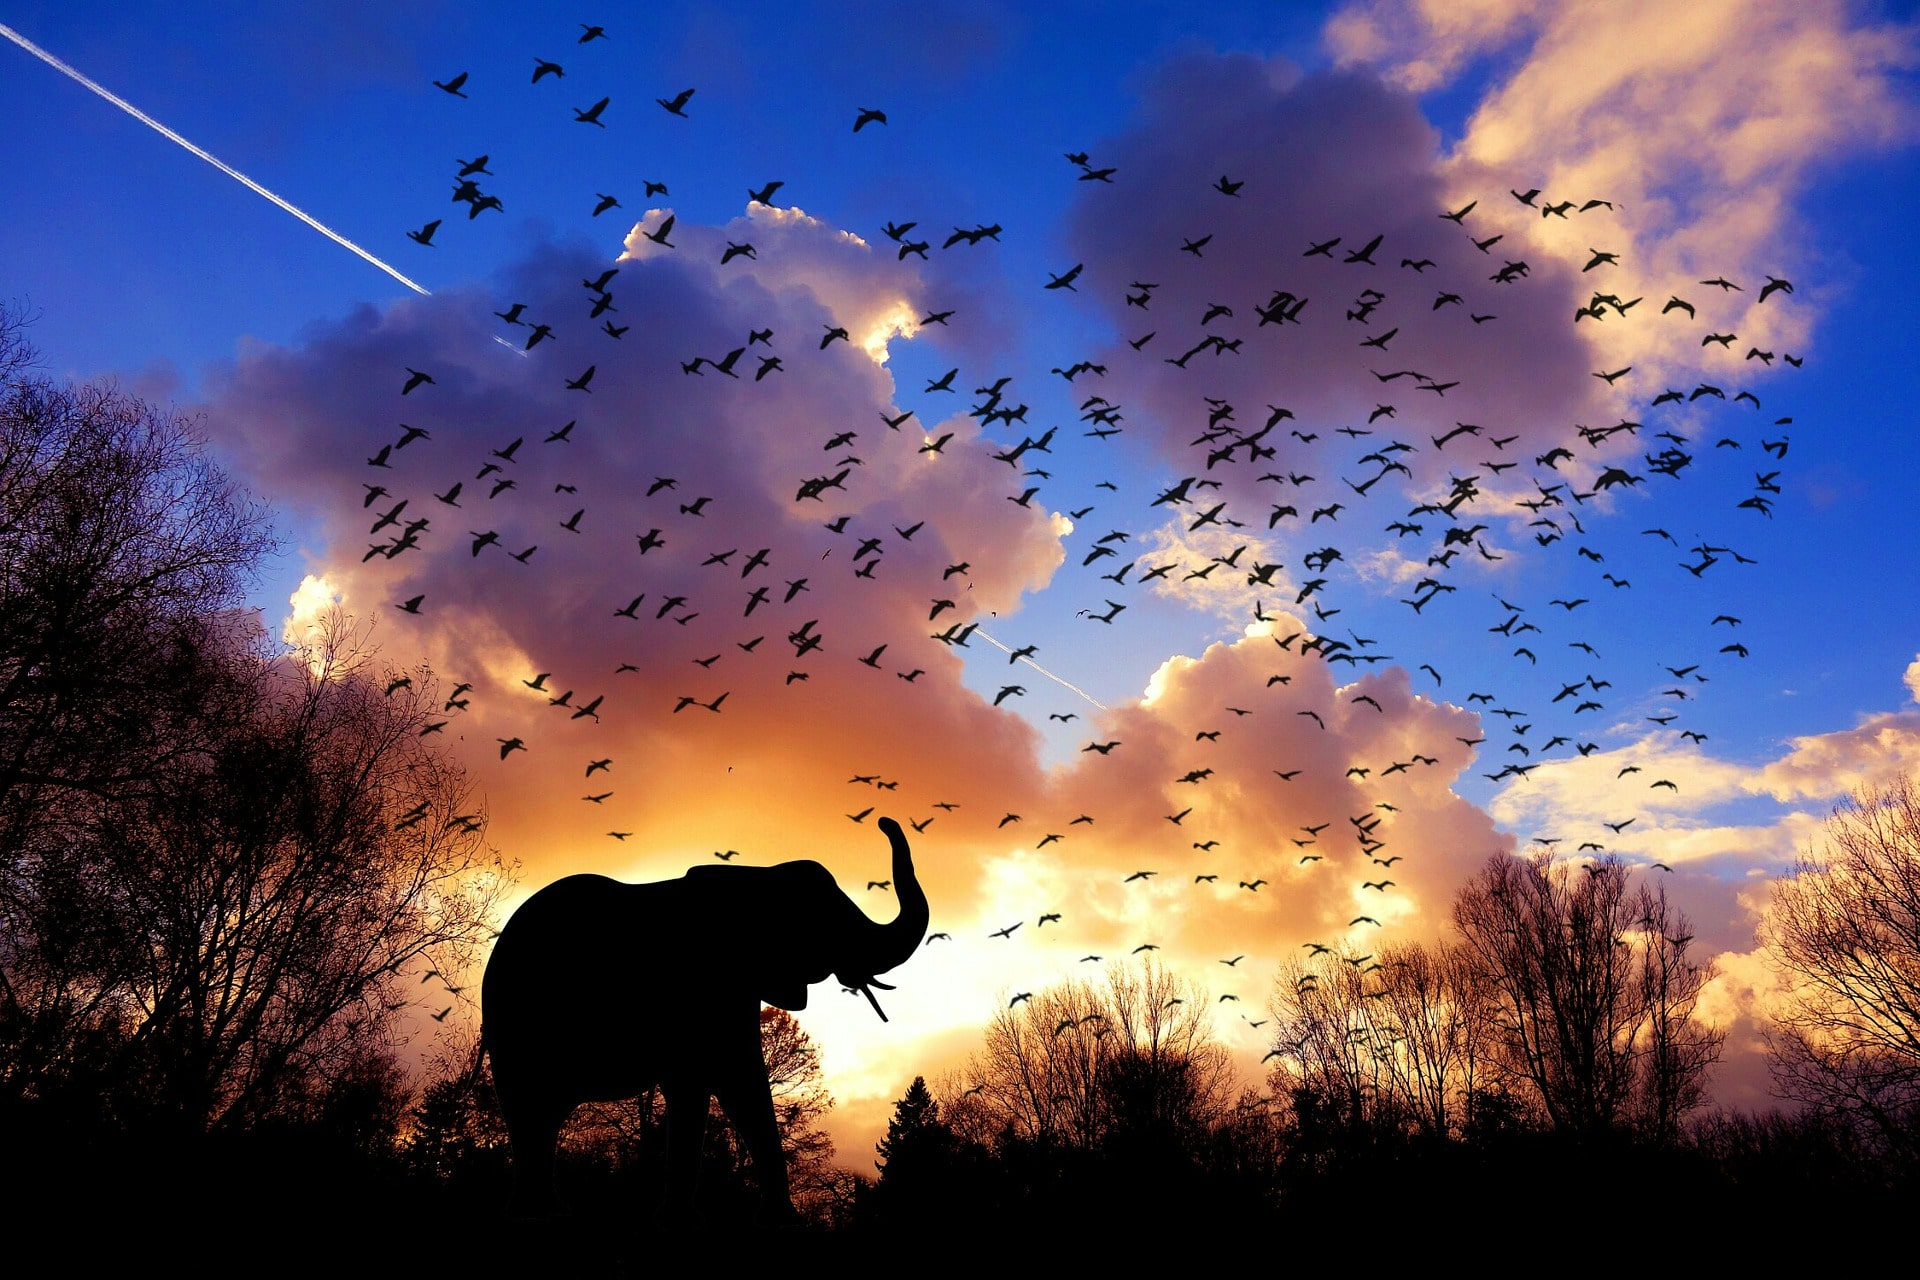 Sunset background, birds in flight, elephant in the foreground